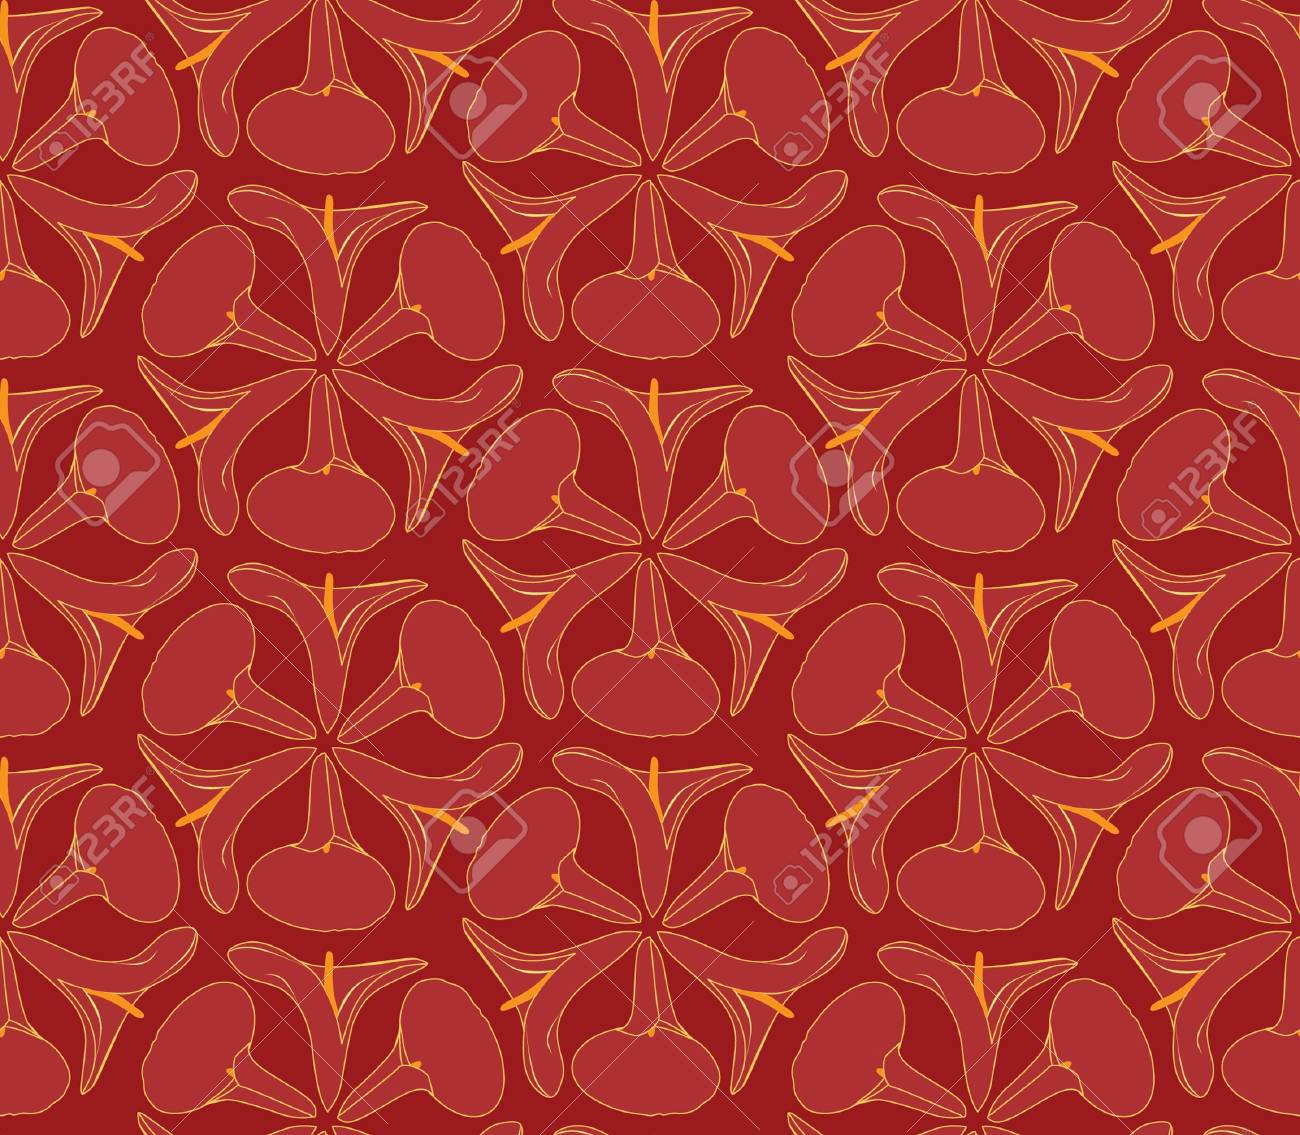 Abstract Decorative Floral Retro Seamless Pattern Flower Cal 1300x1135